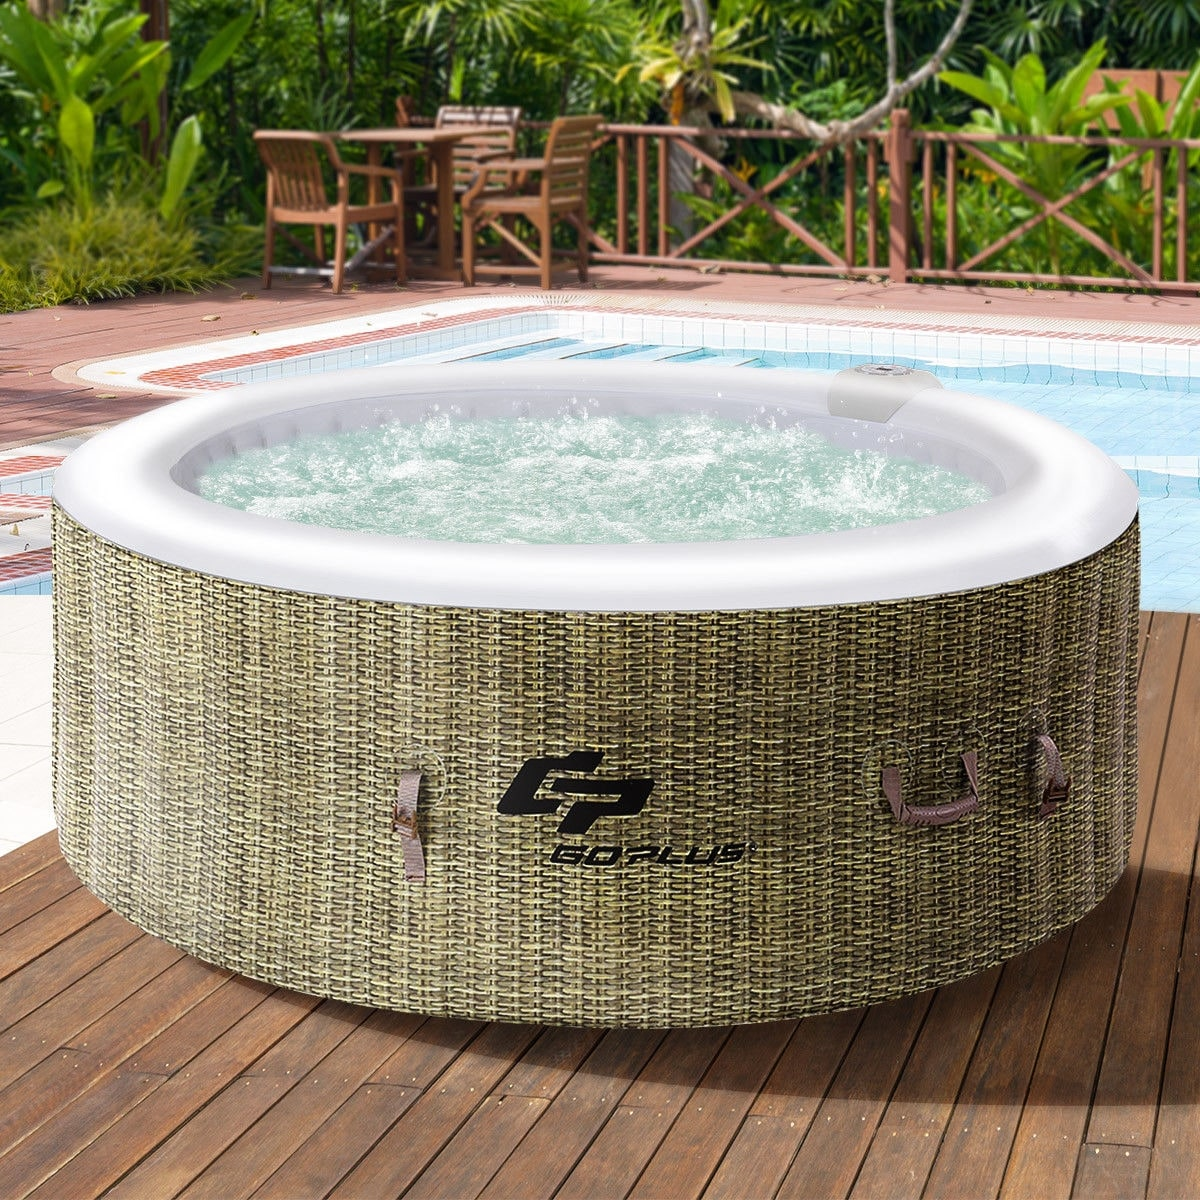 Shop Goplus 4 Person Inflatable Hot Tub Outdoor Jets Portable Heated ...